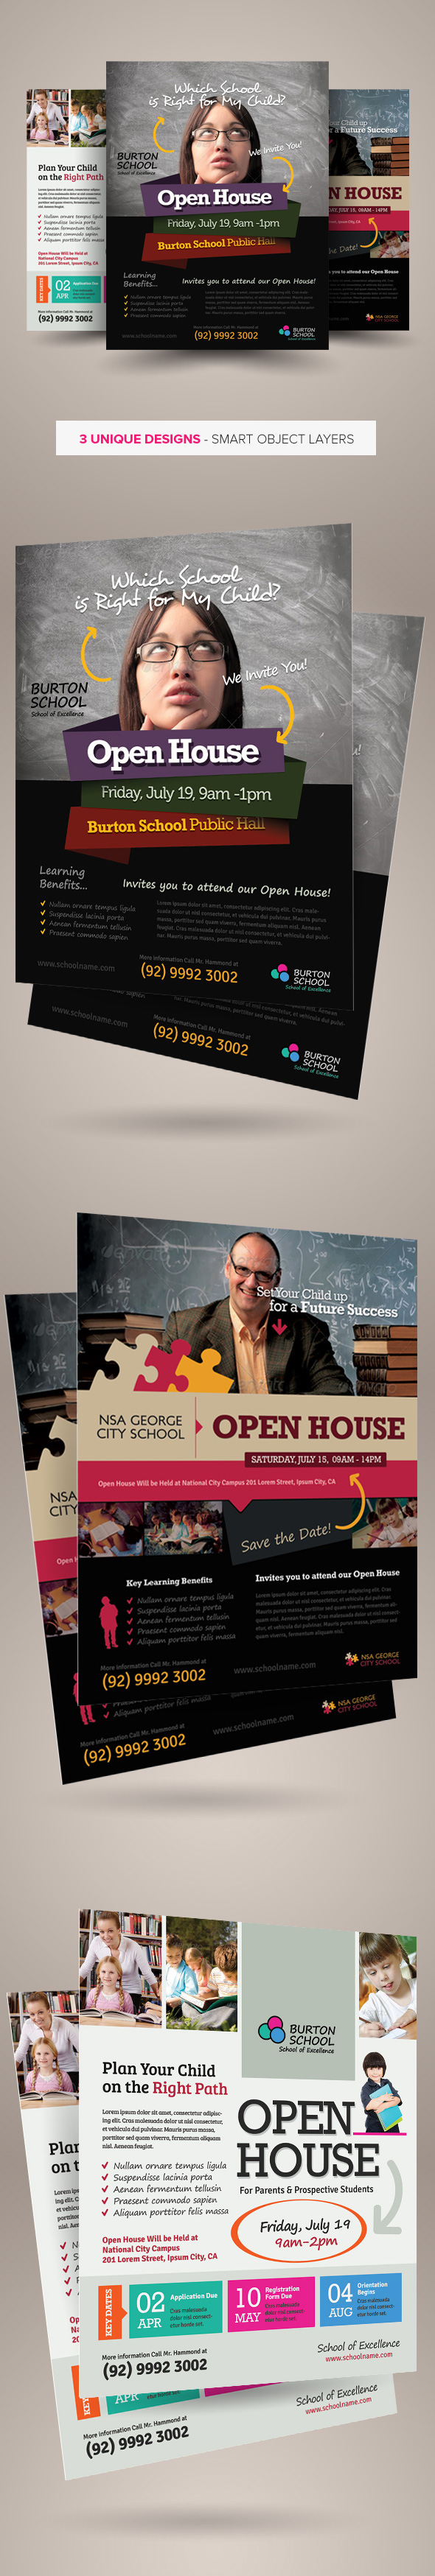 School Open House Flyers On Behance - Open house ad template